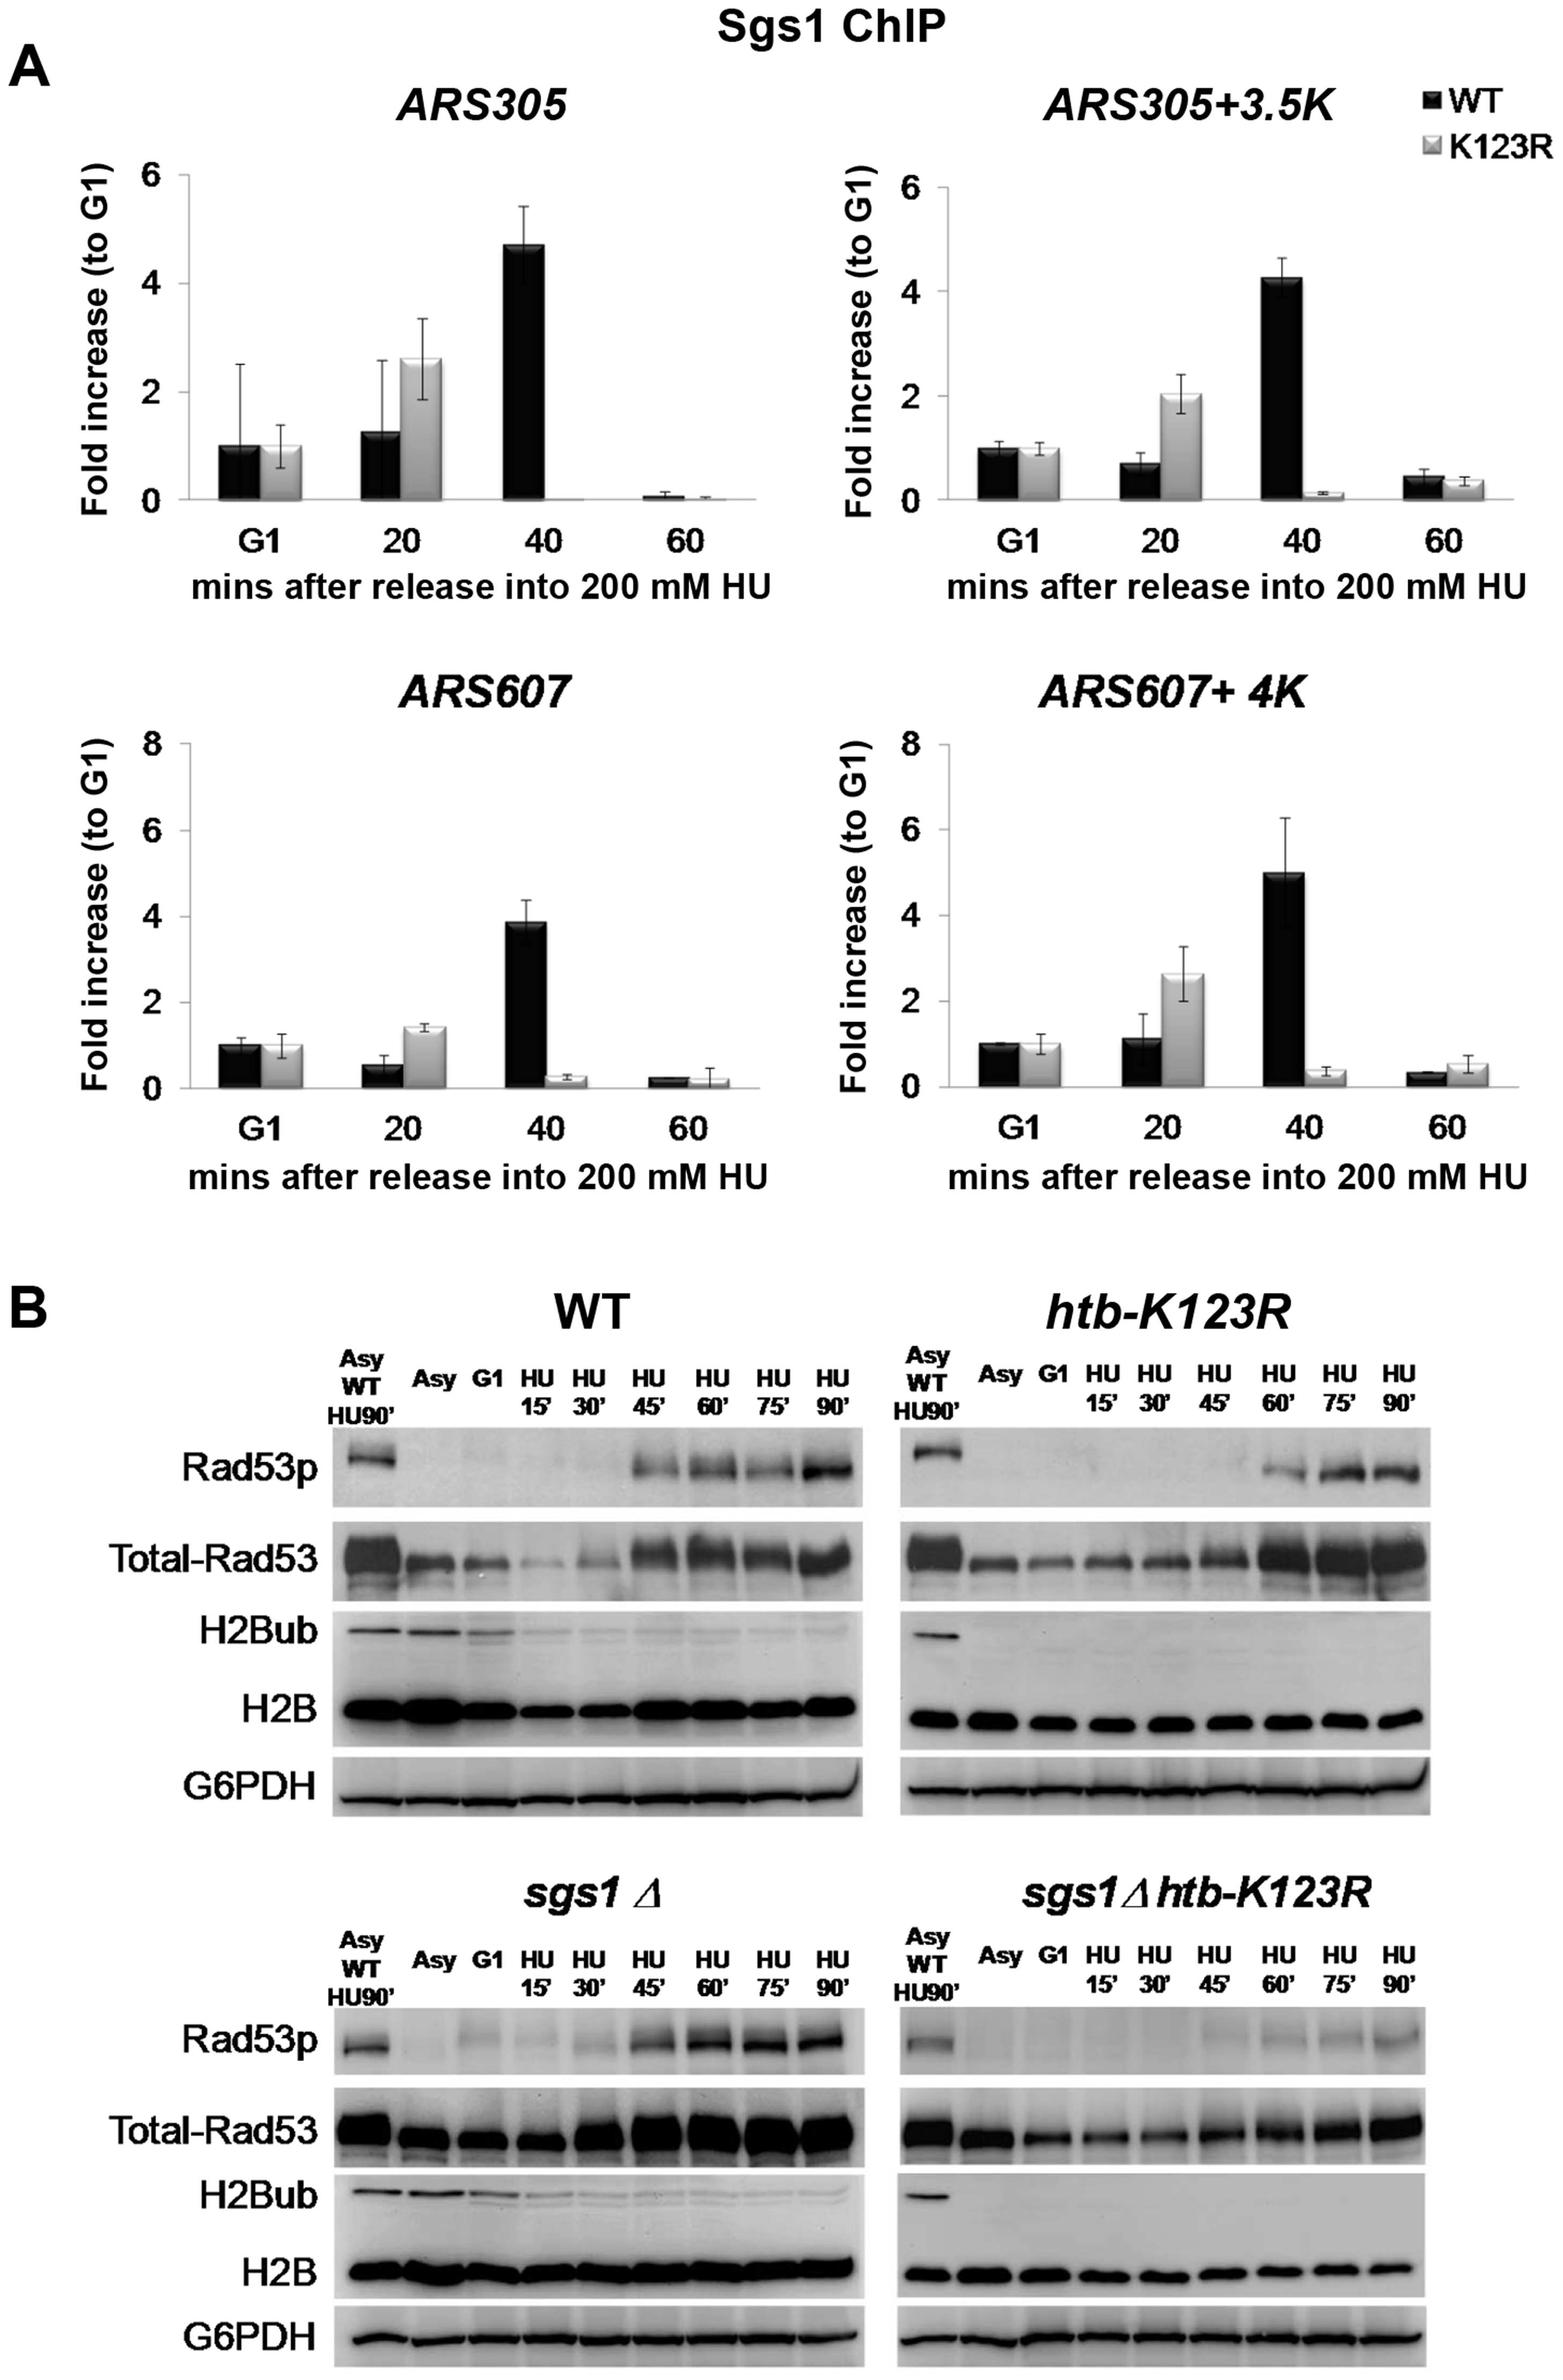 H2Bub and Sgs1 play interdependent roles in Rad53 phosphorylation.